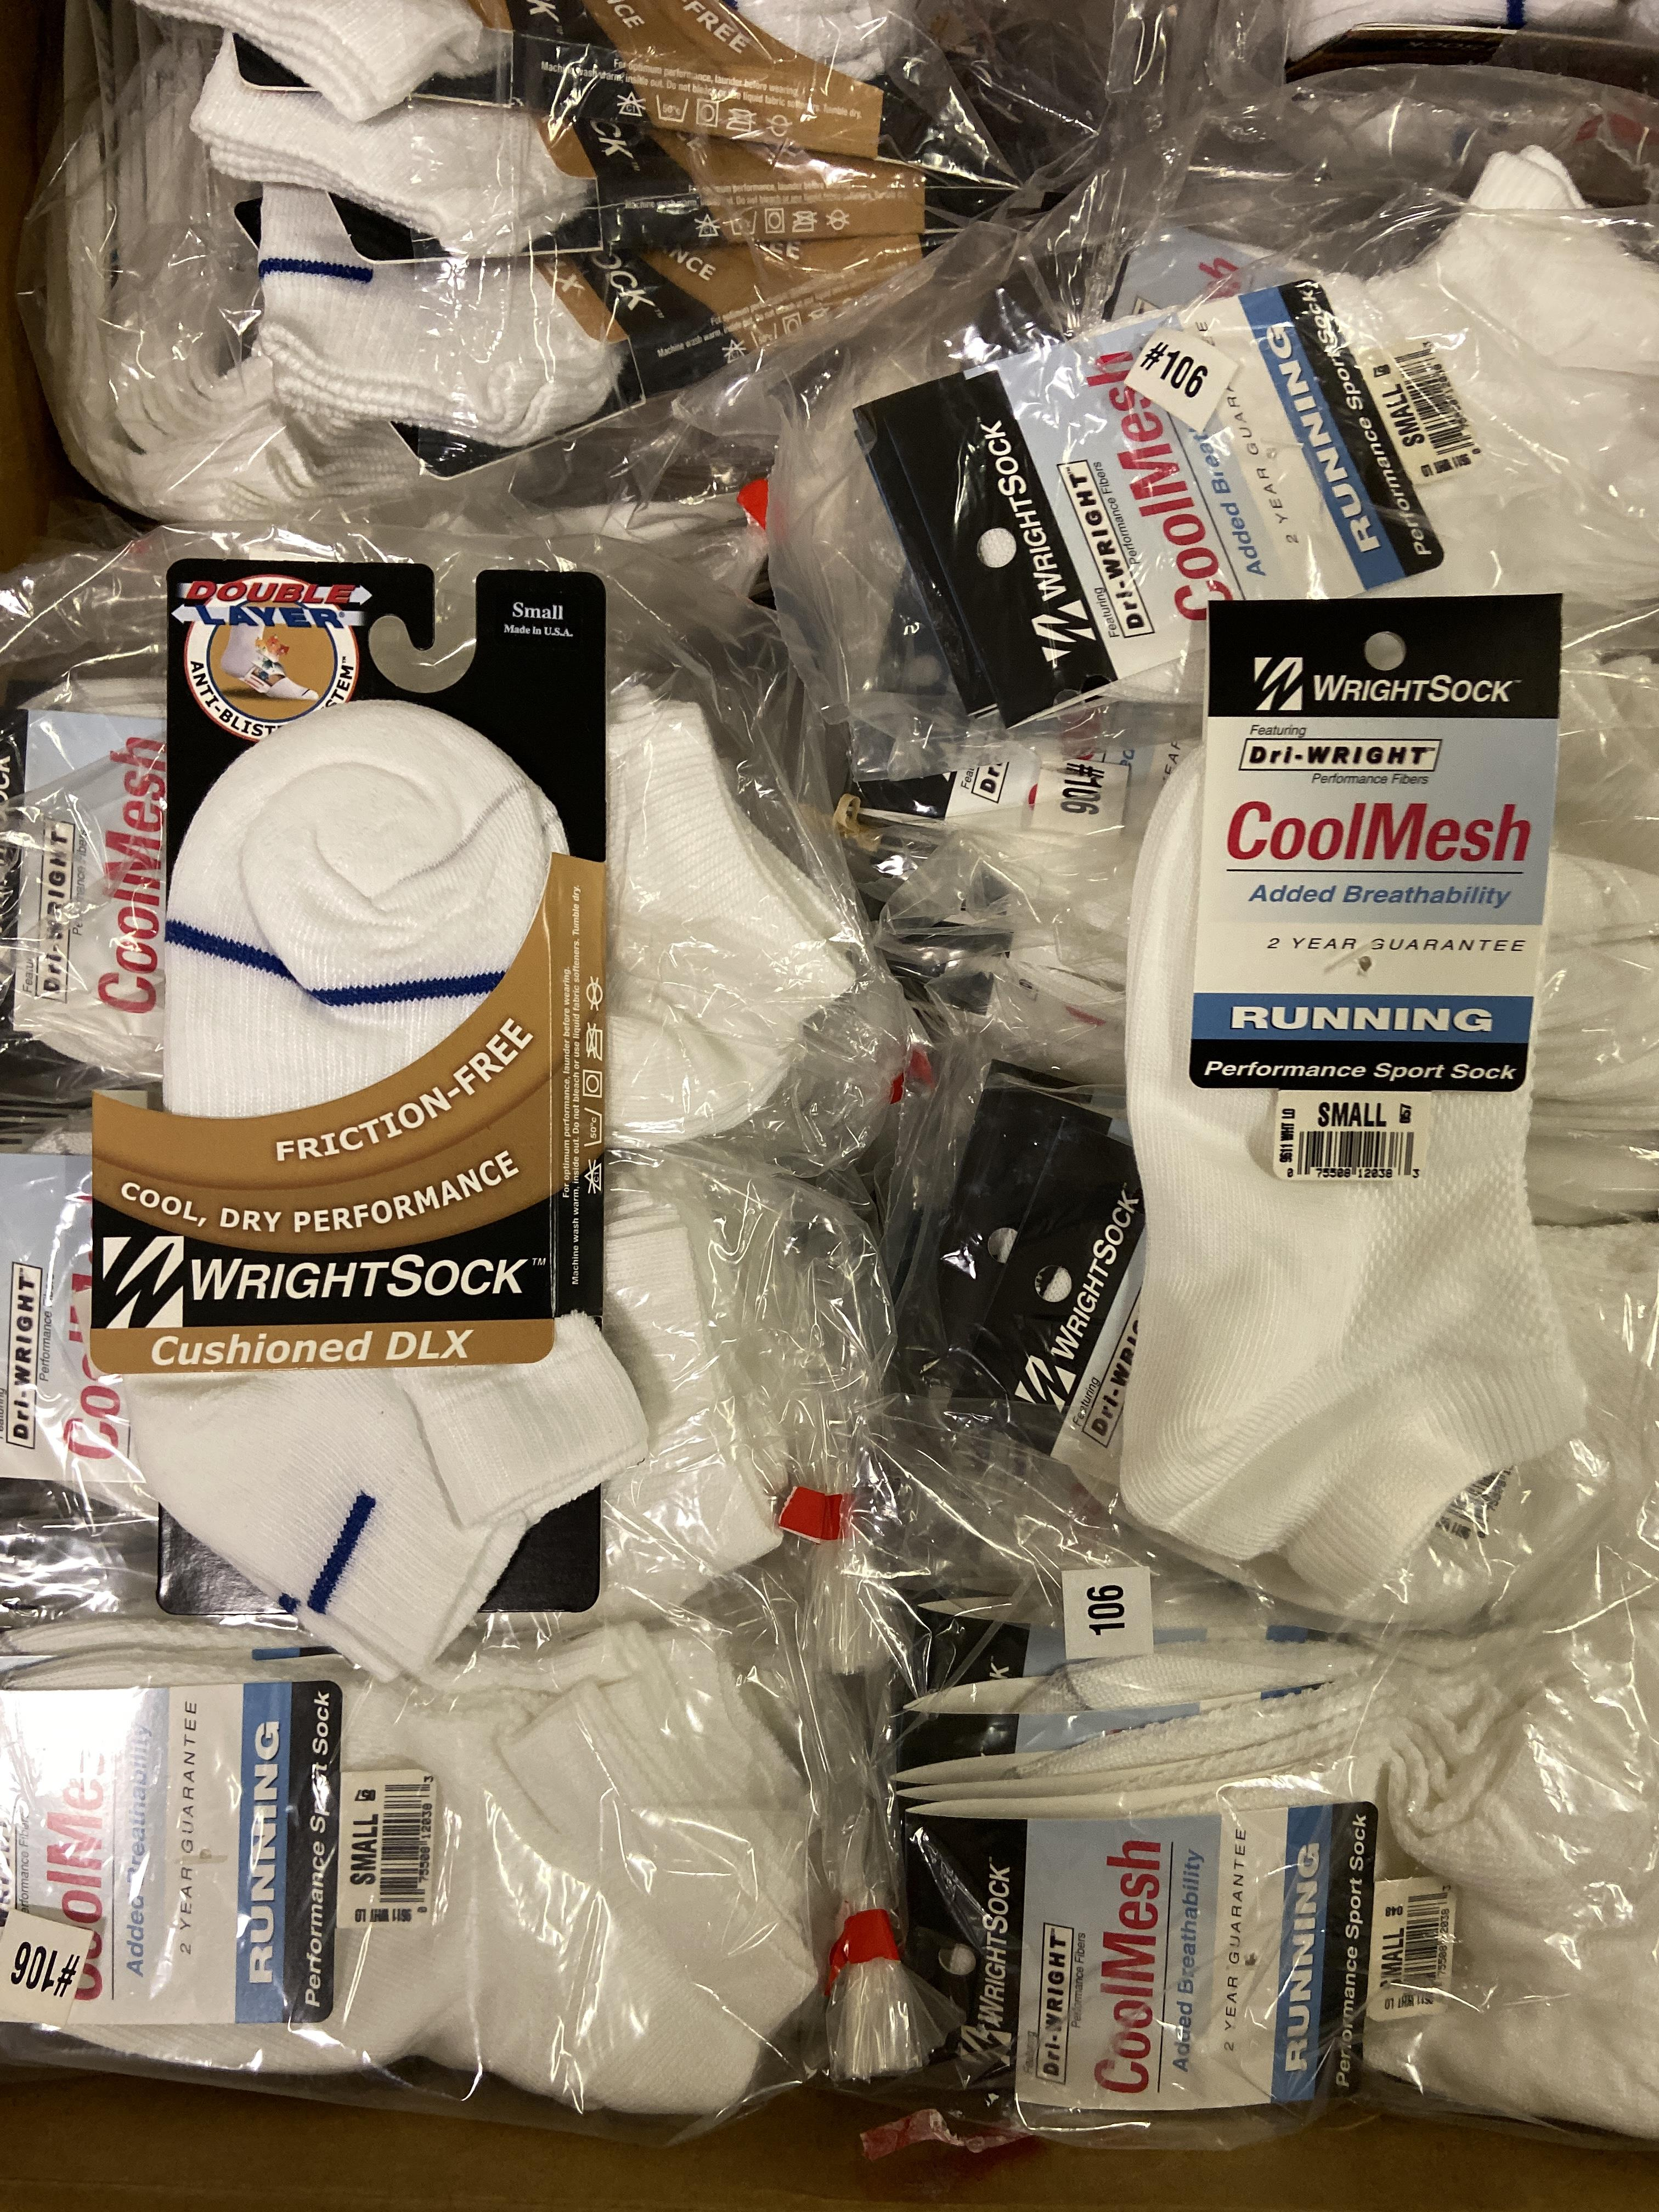 500+ packs of New Socks, Wrightsock Various Styles, Double Layer, Various Colors White/Black/Etc - Image 6 of 7